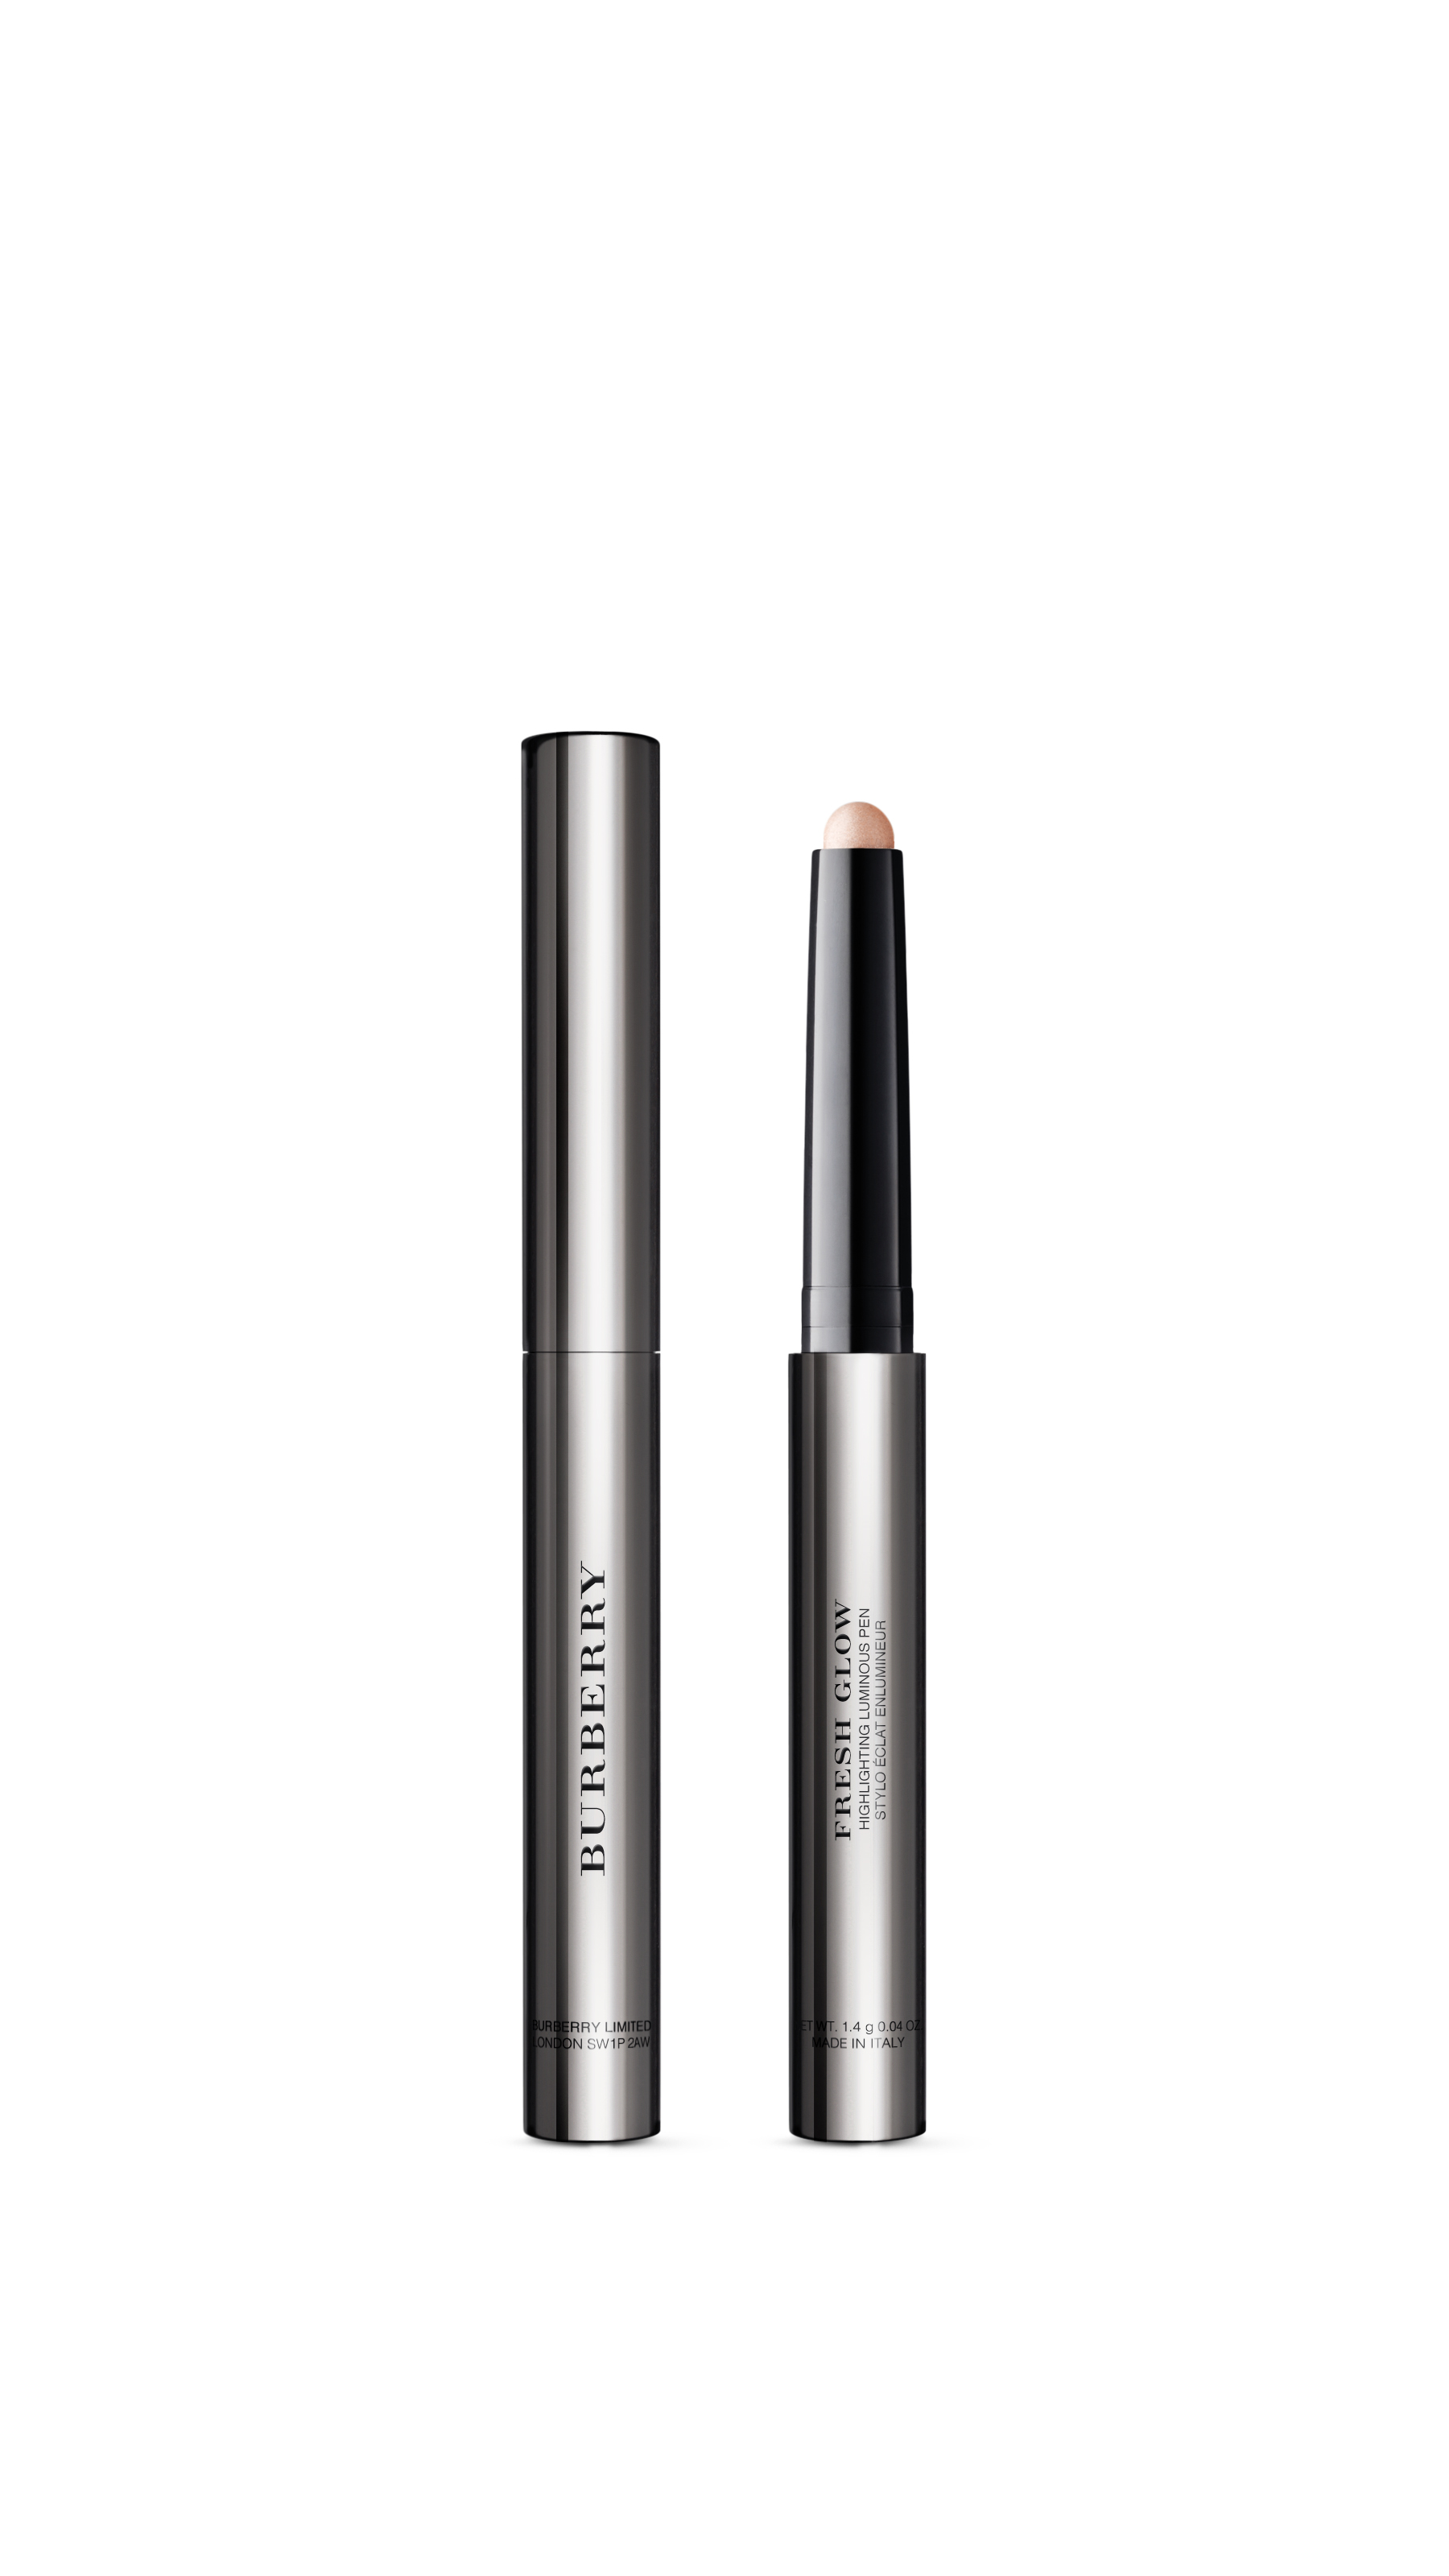 Burberry Fresh Glow - Highlighting Luminous Pen